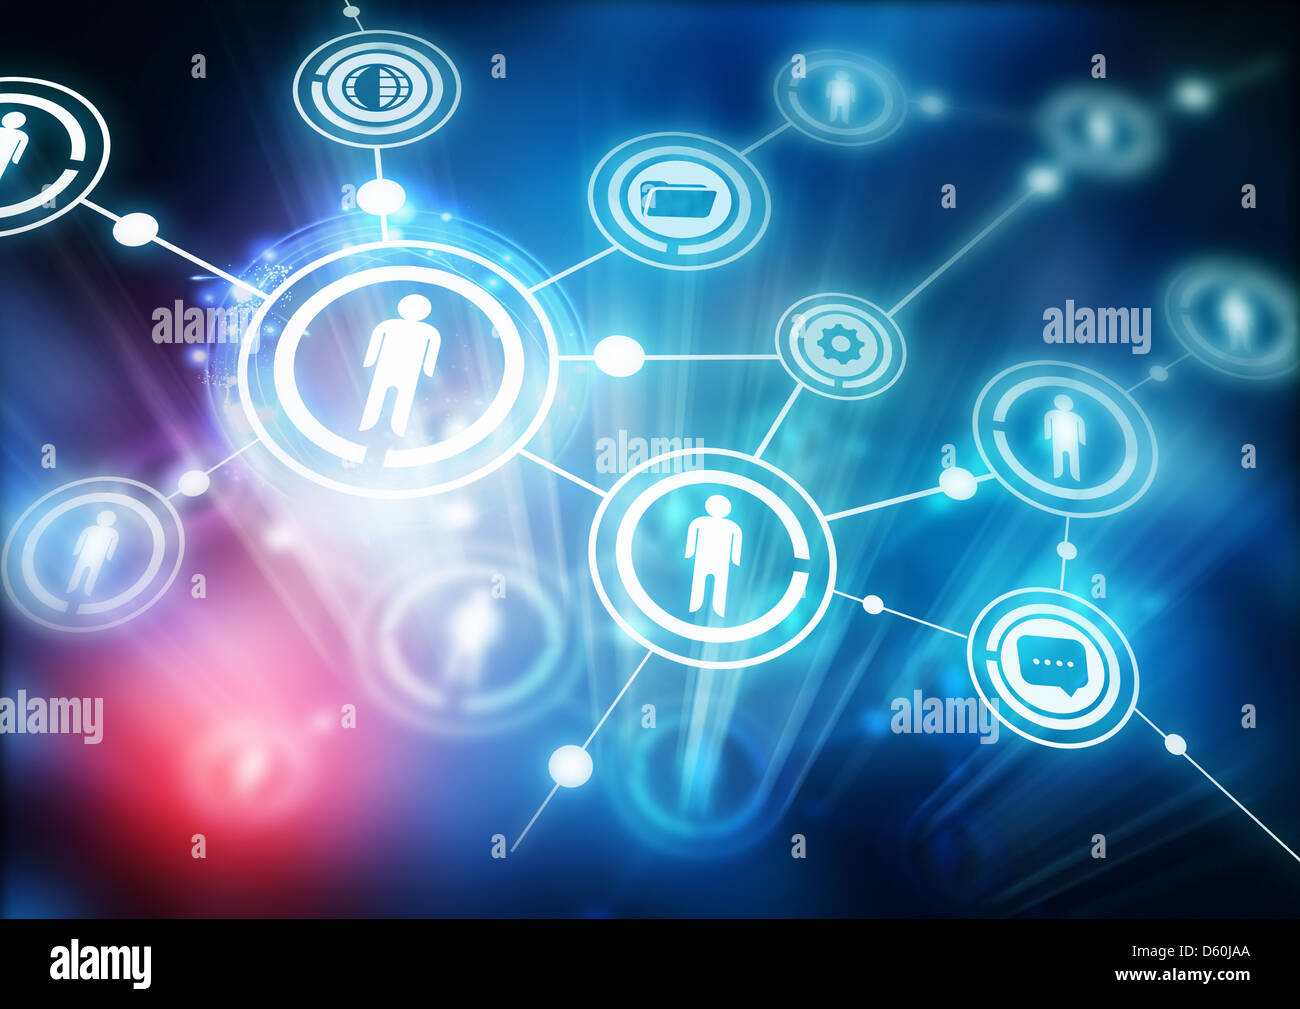 Network Community - Illustration with connected people. - Stock Image